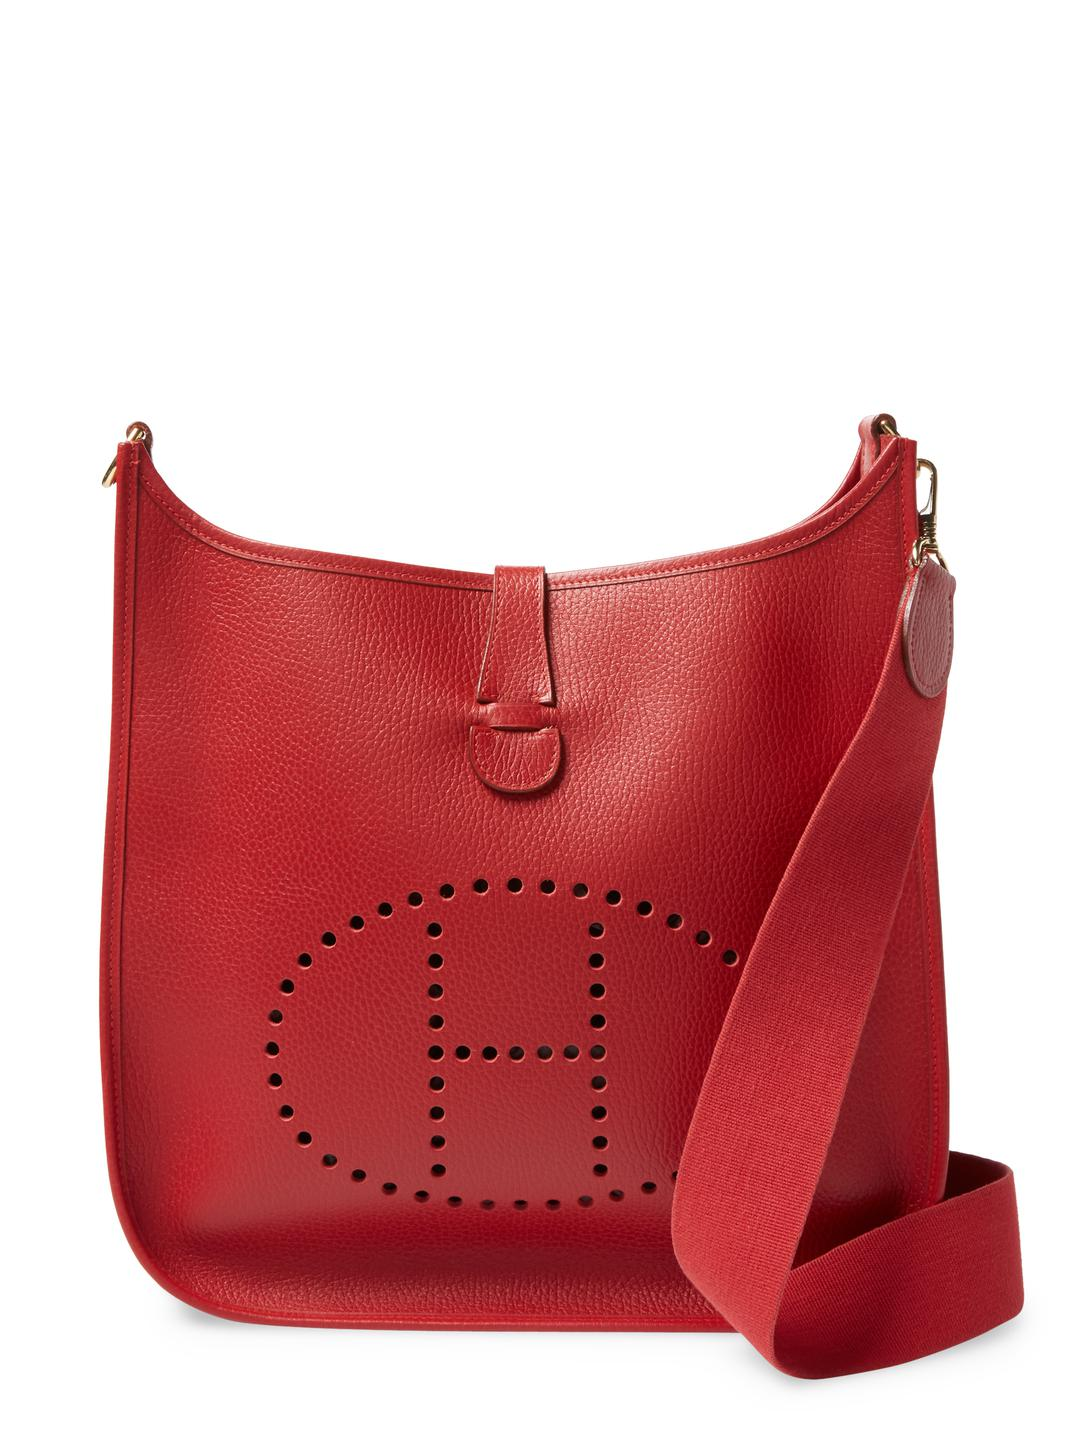 6f70fafb9a26 ... new zealand hermès. womens vintage hermes red ardns evelyne gm a8c20  3f2d1